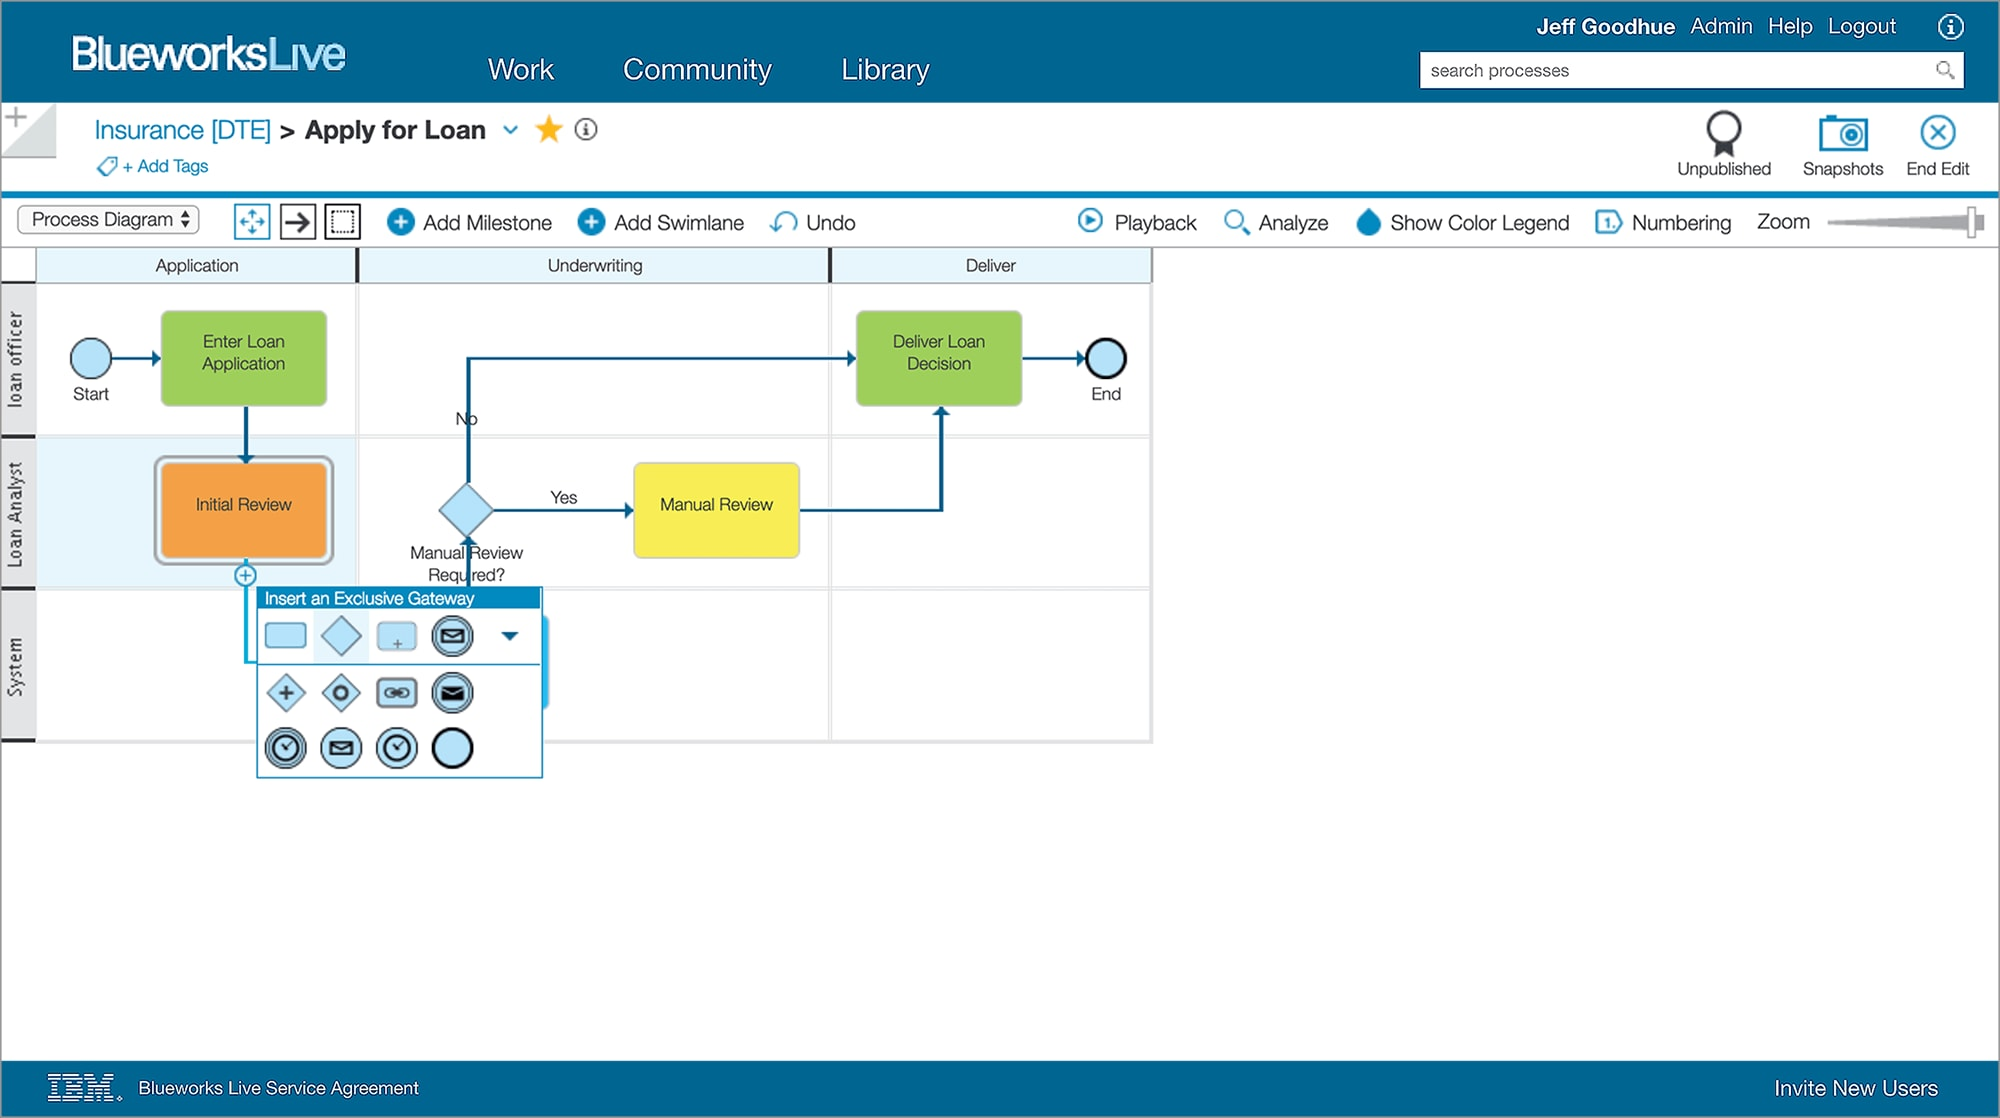 IBM Blueworks Live page, showing drag-and-drop mapping.